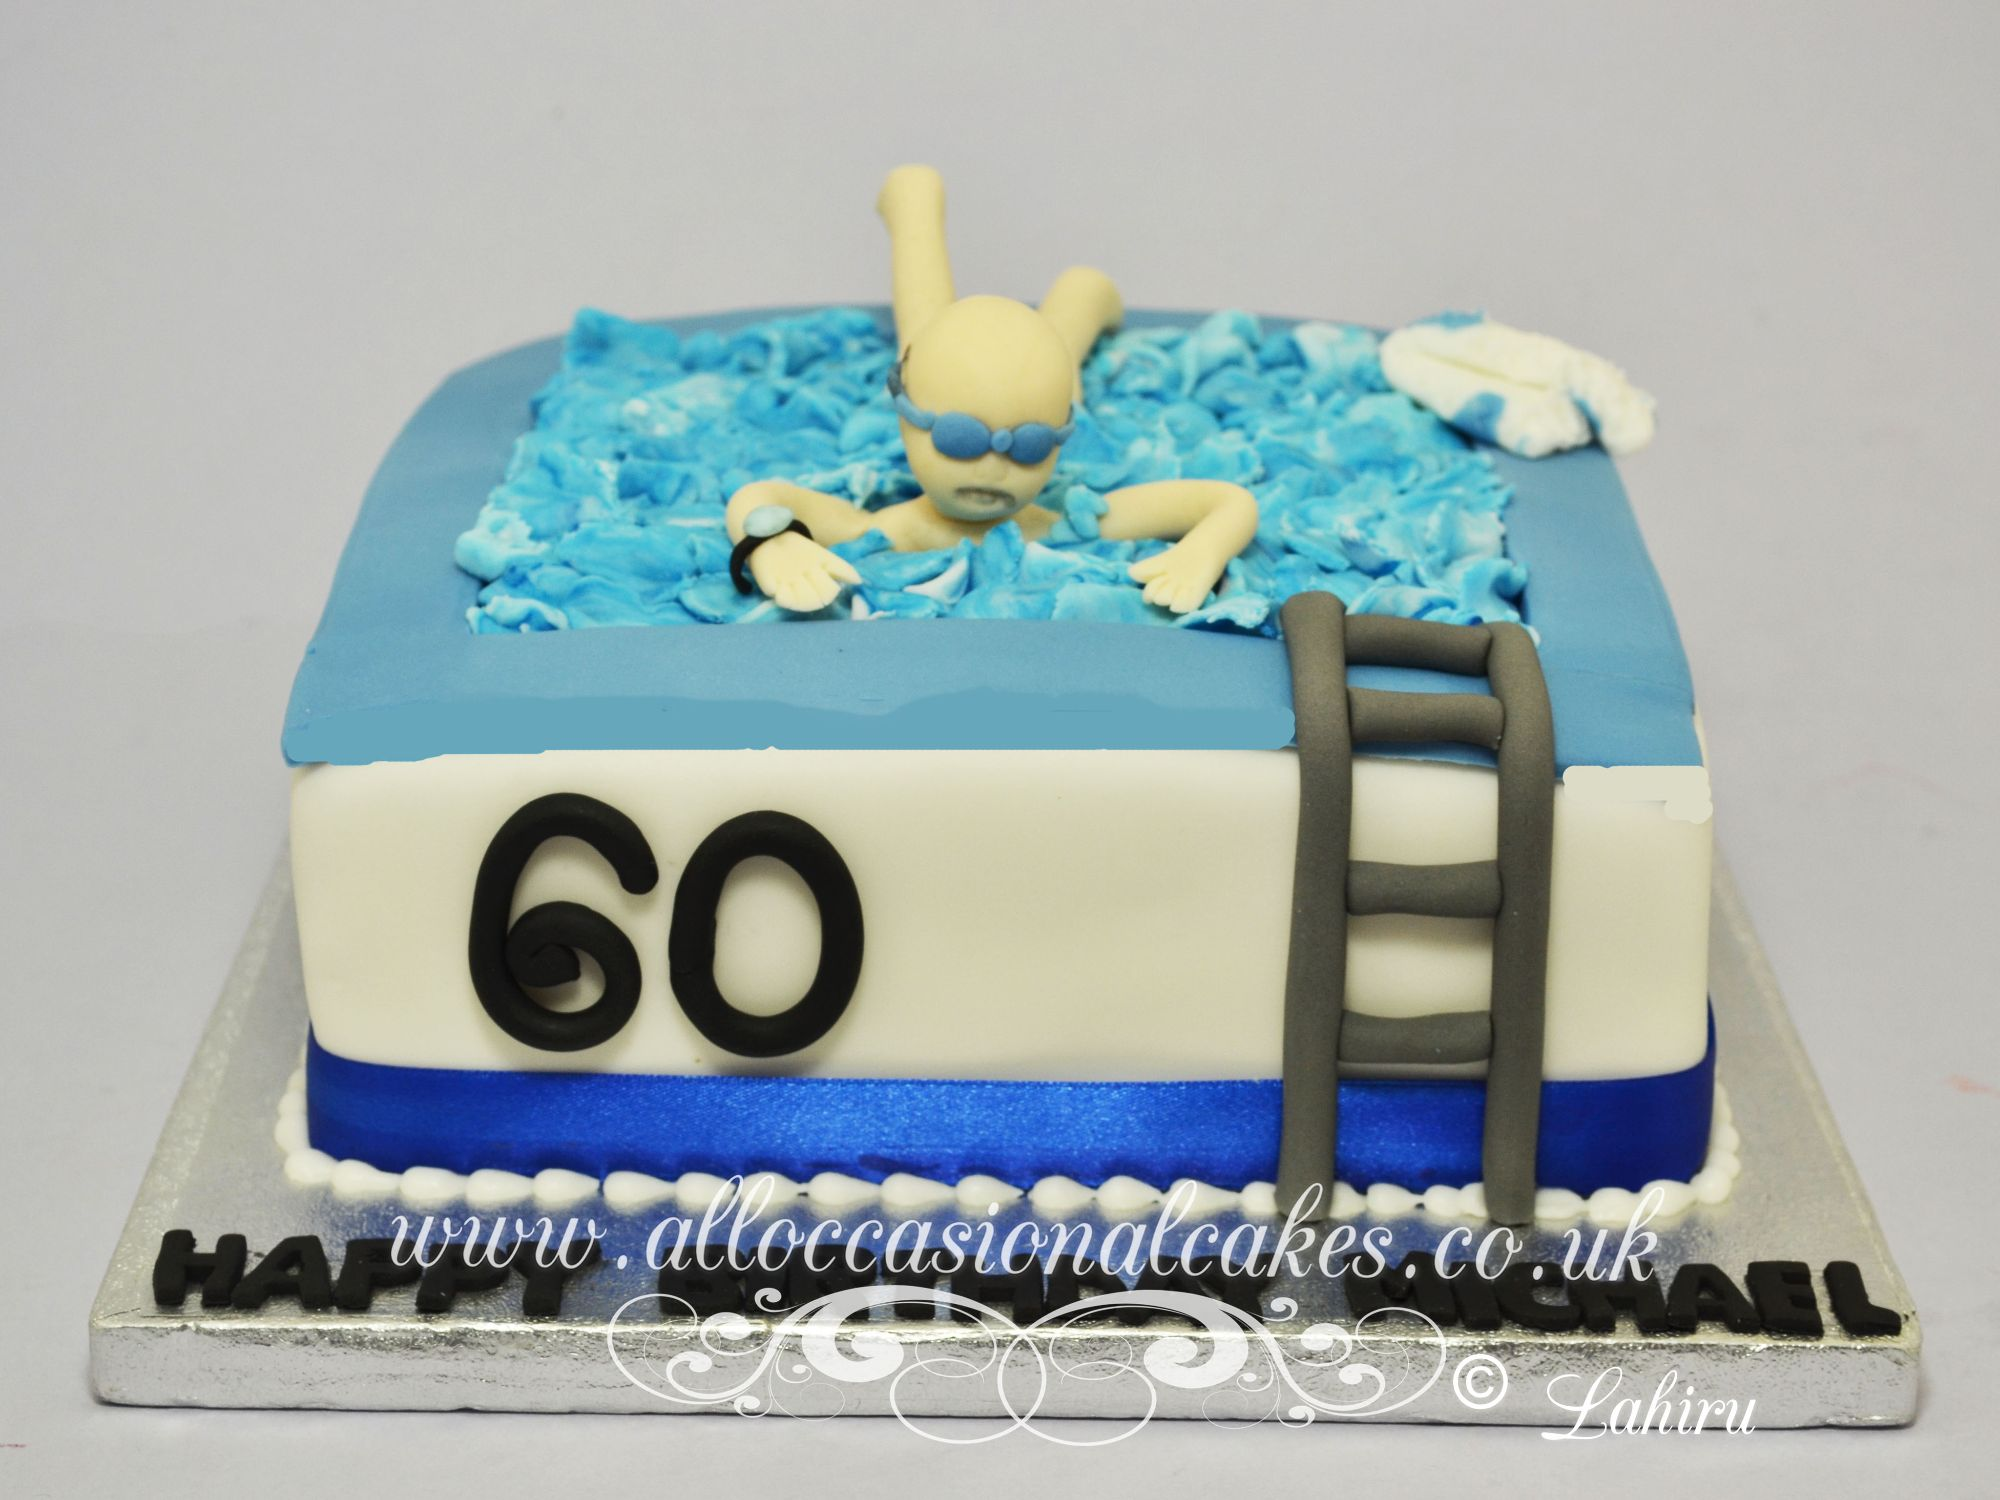 man in a pool cake from